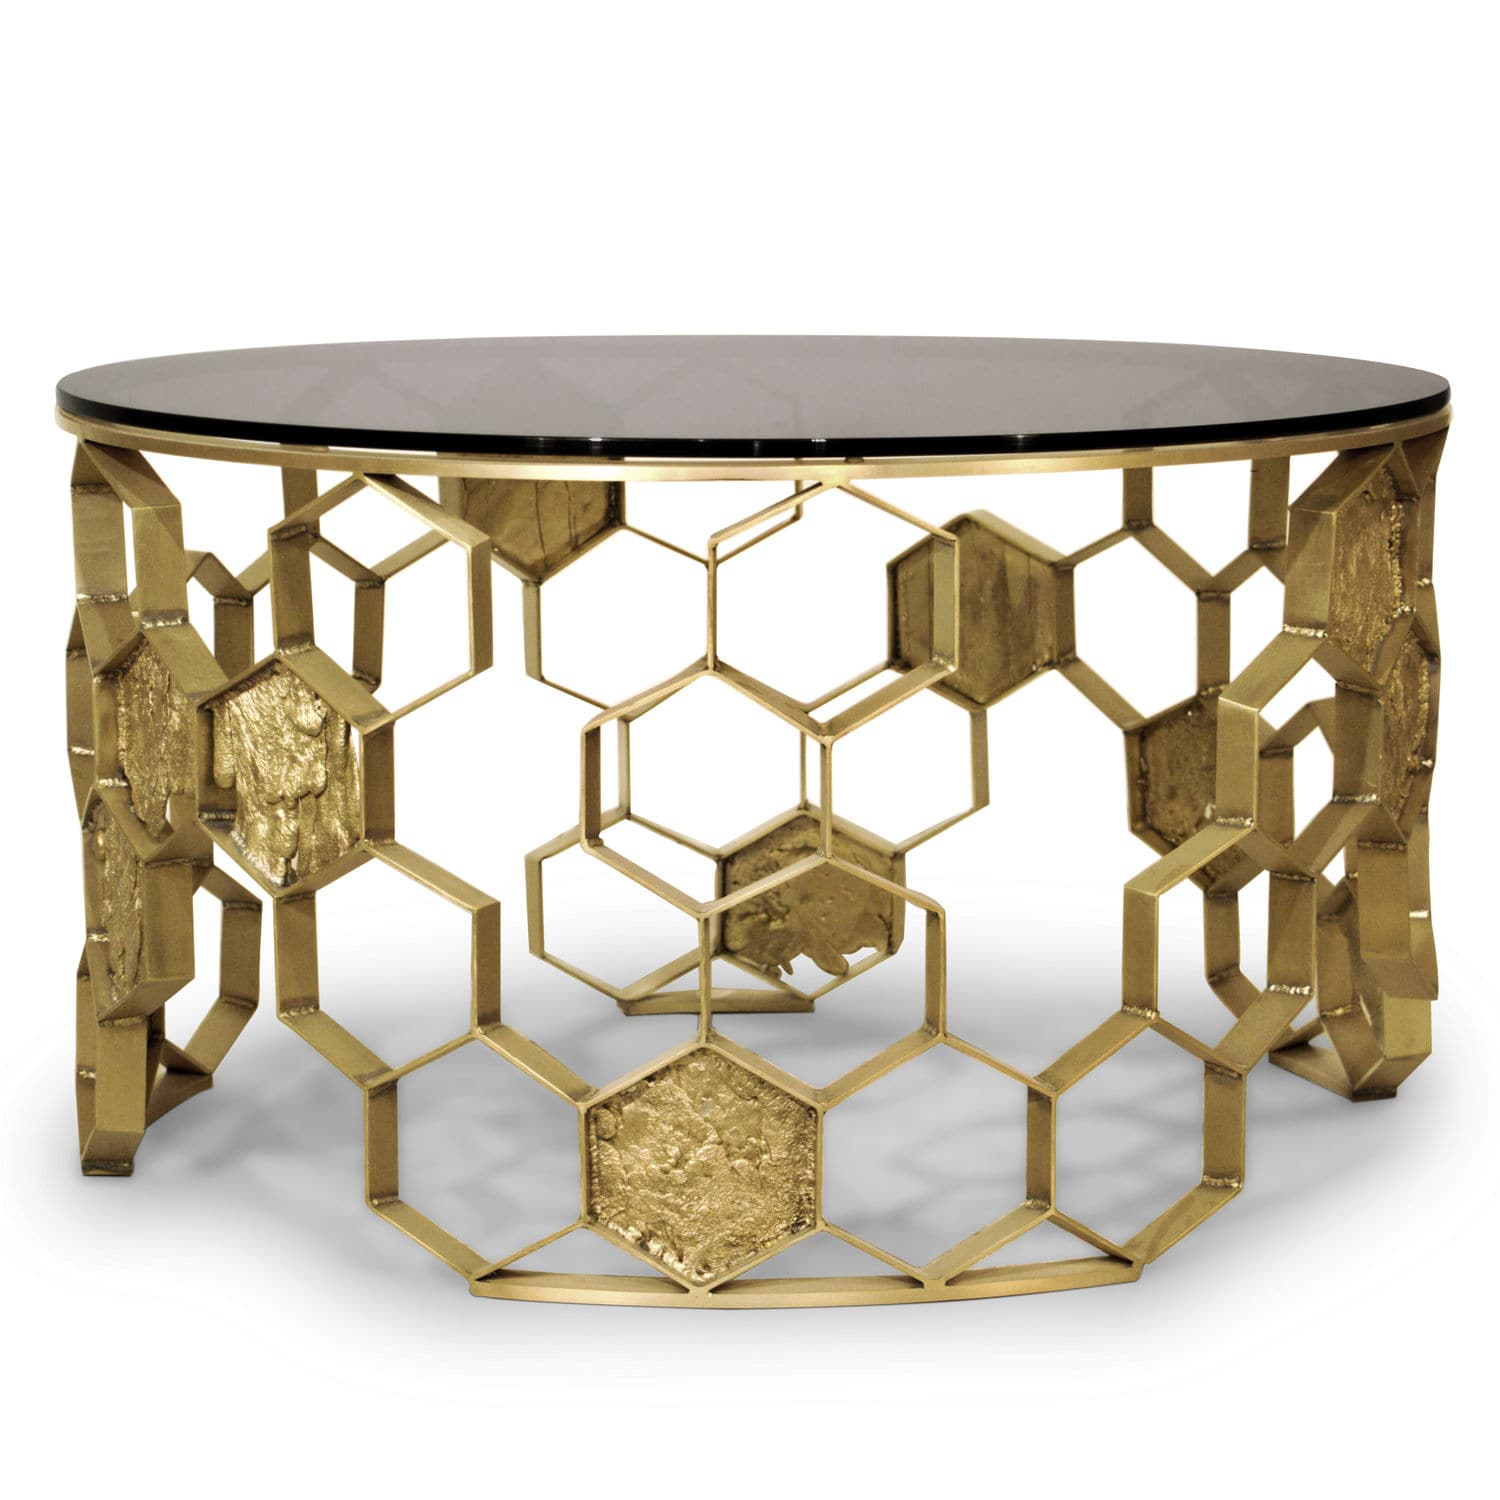 Superieur Contemporary Coffee Table / Glass / Brass / Round   MANUKA